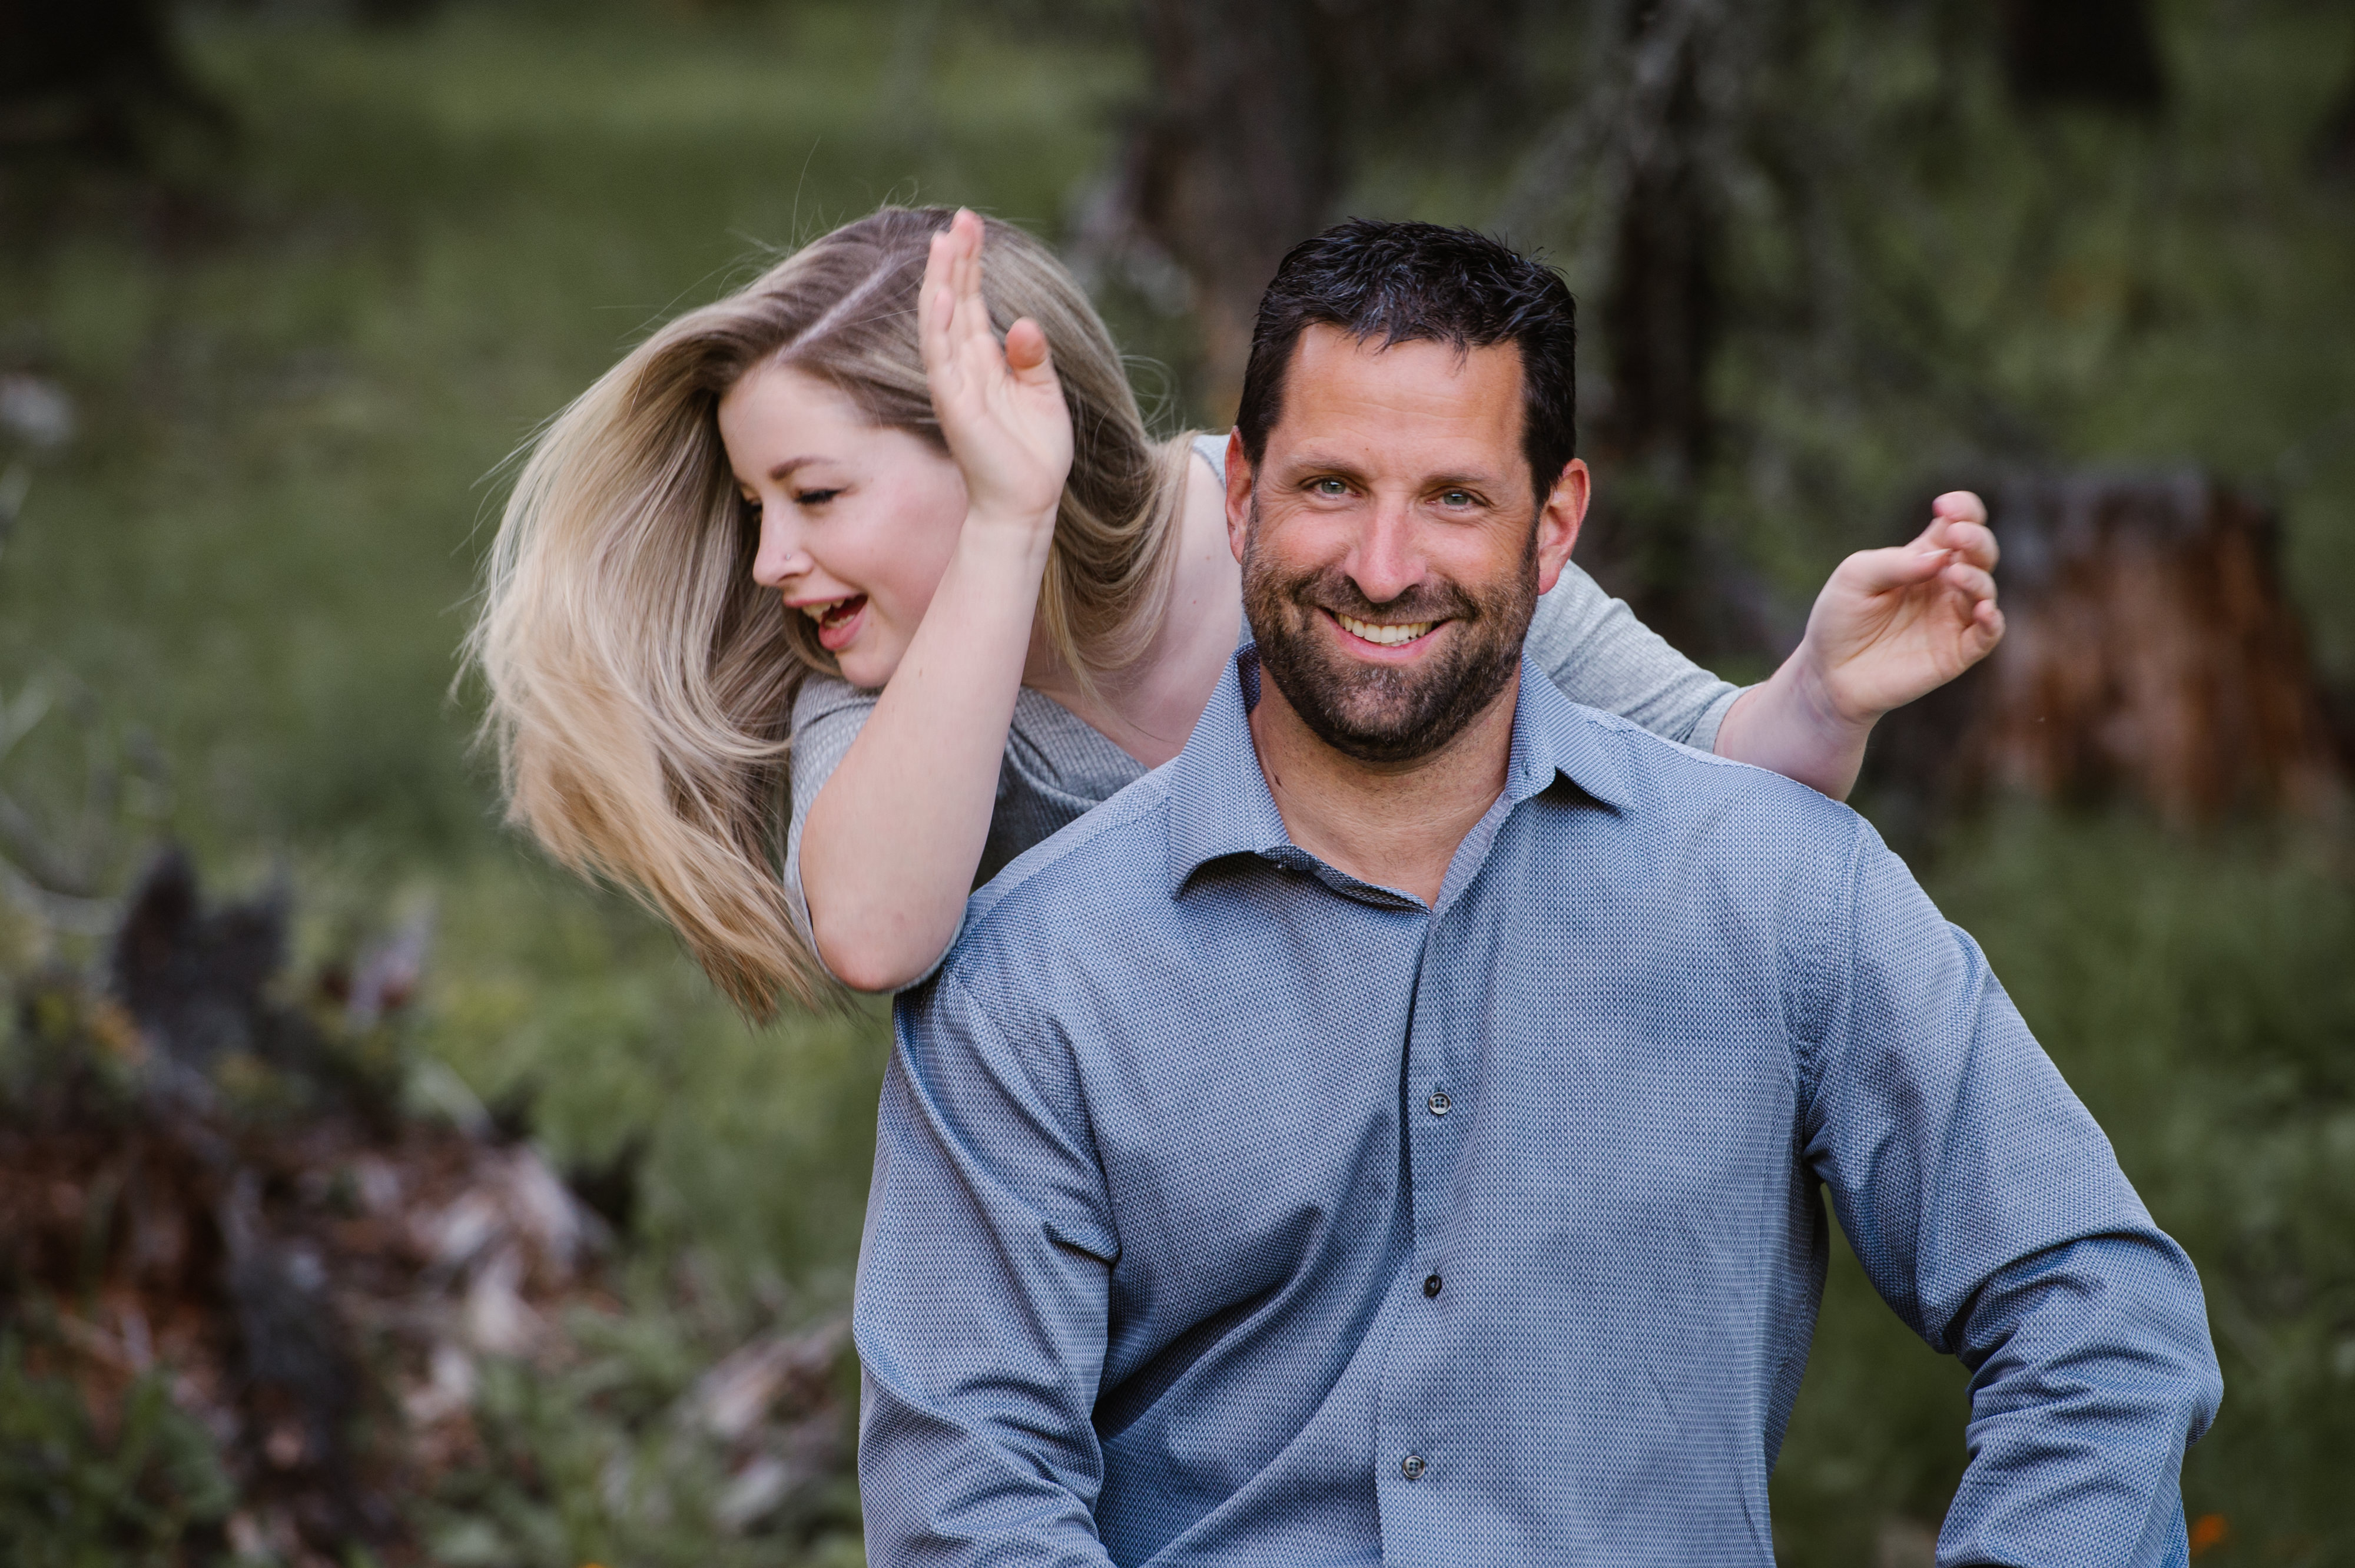 Harper Mountain portrait session family father daughter moment golden hour sunshine Kamloops photographer outtake BTS behind the scenes